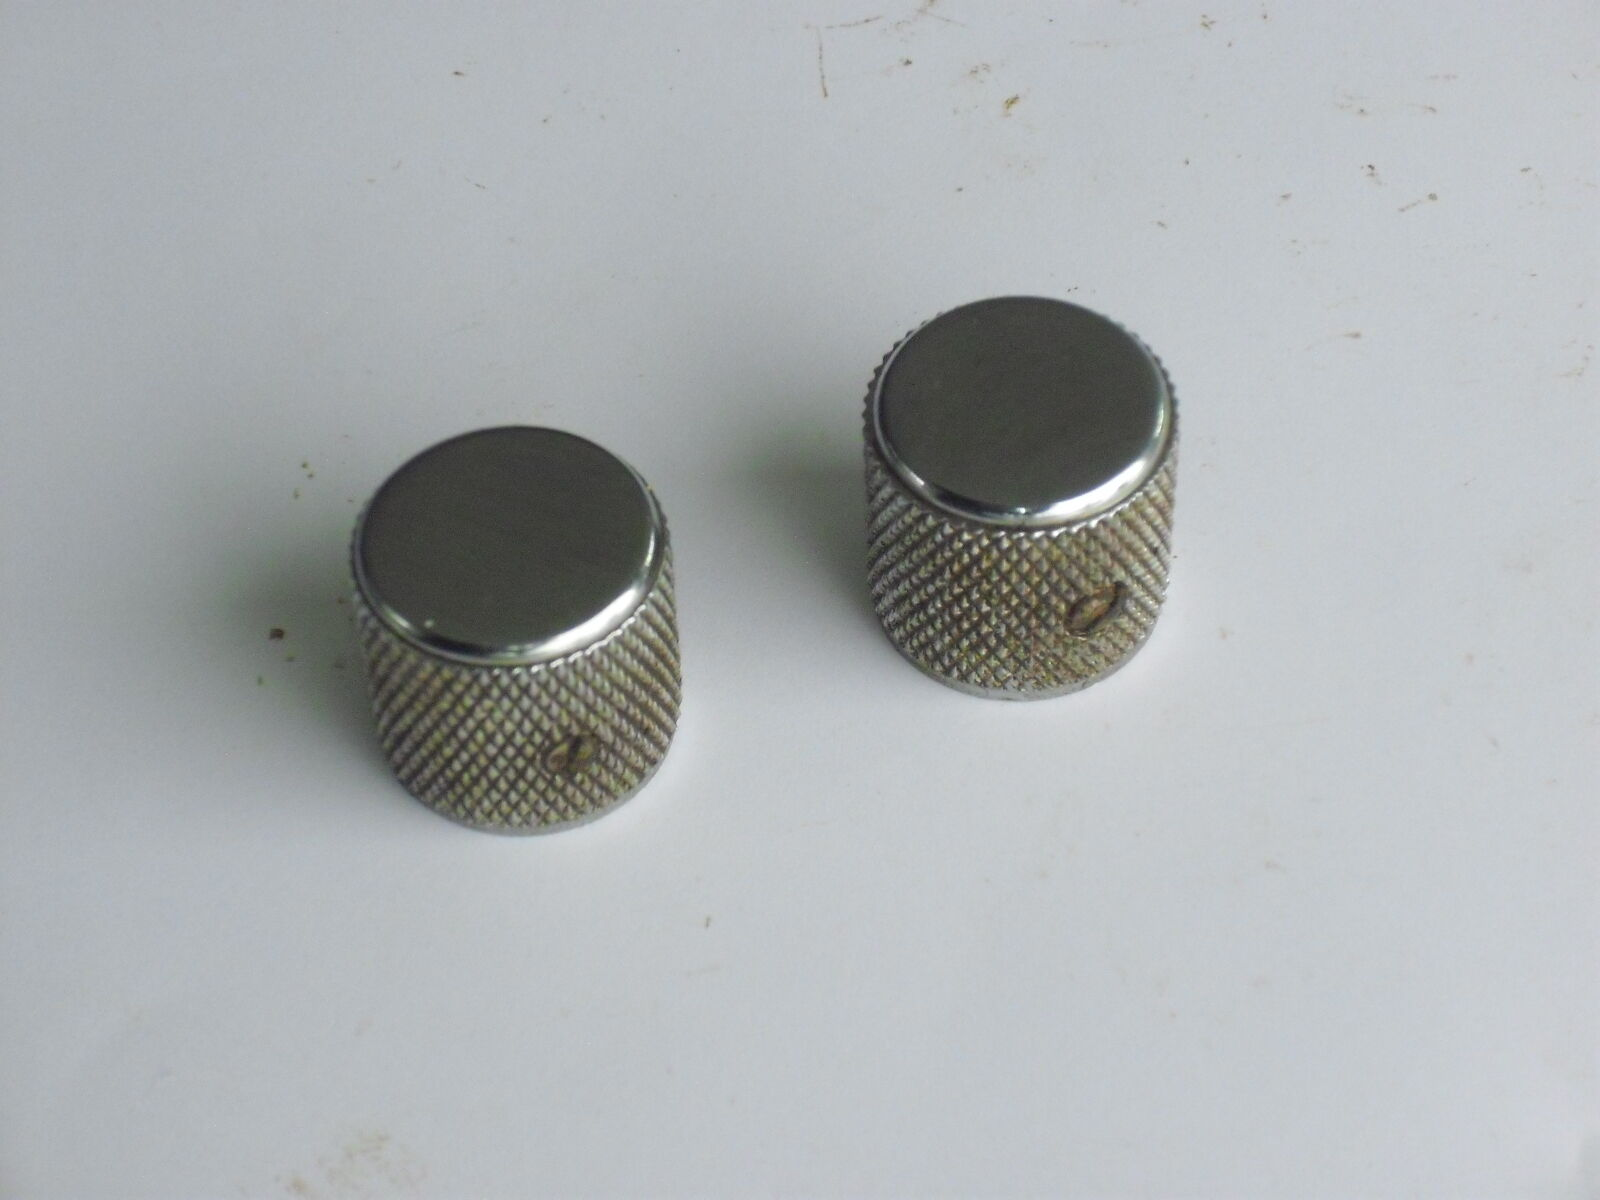 TWO 60's 70's 2 Fender telecaster Knobs 0.4 oz Duo Sonic Precision Vintage Relic